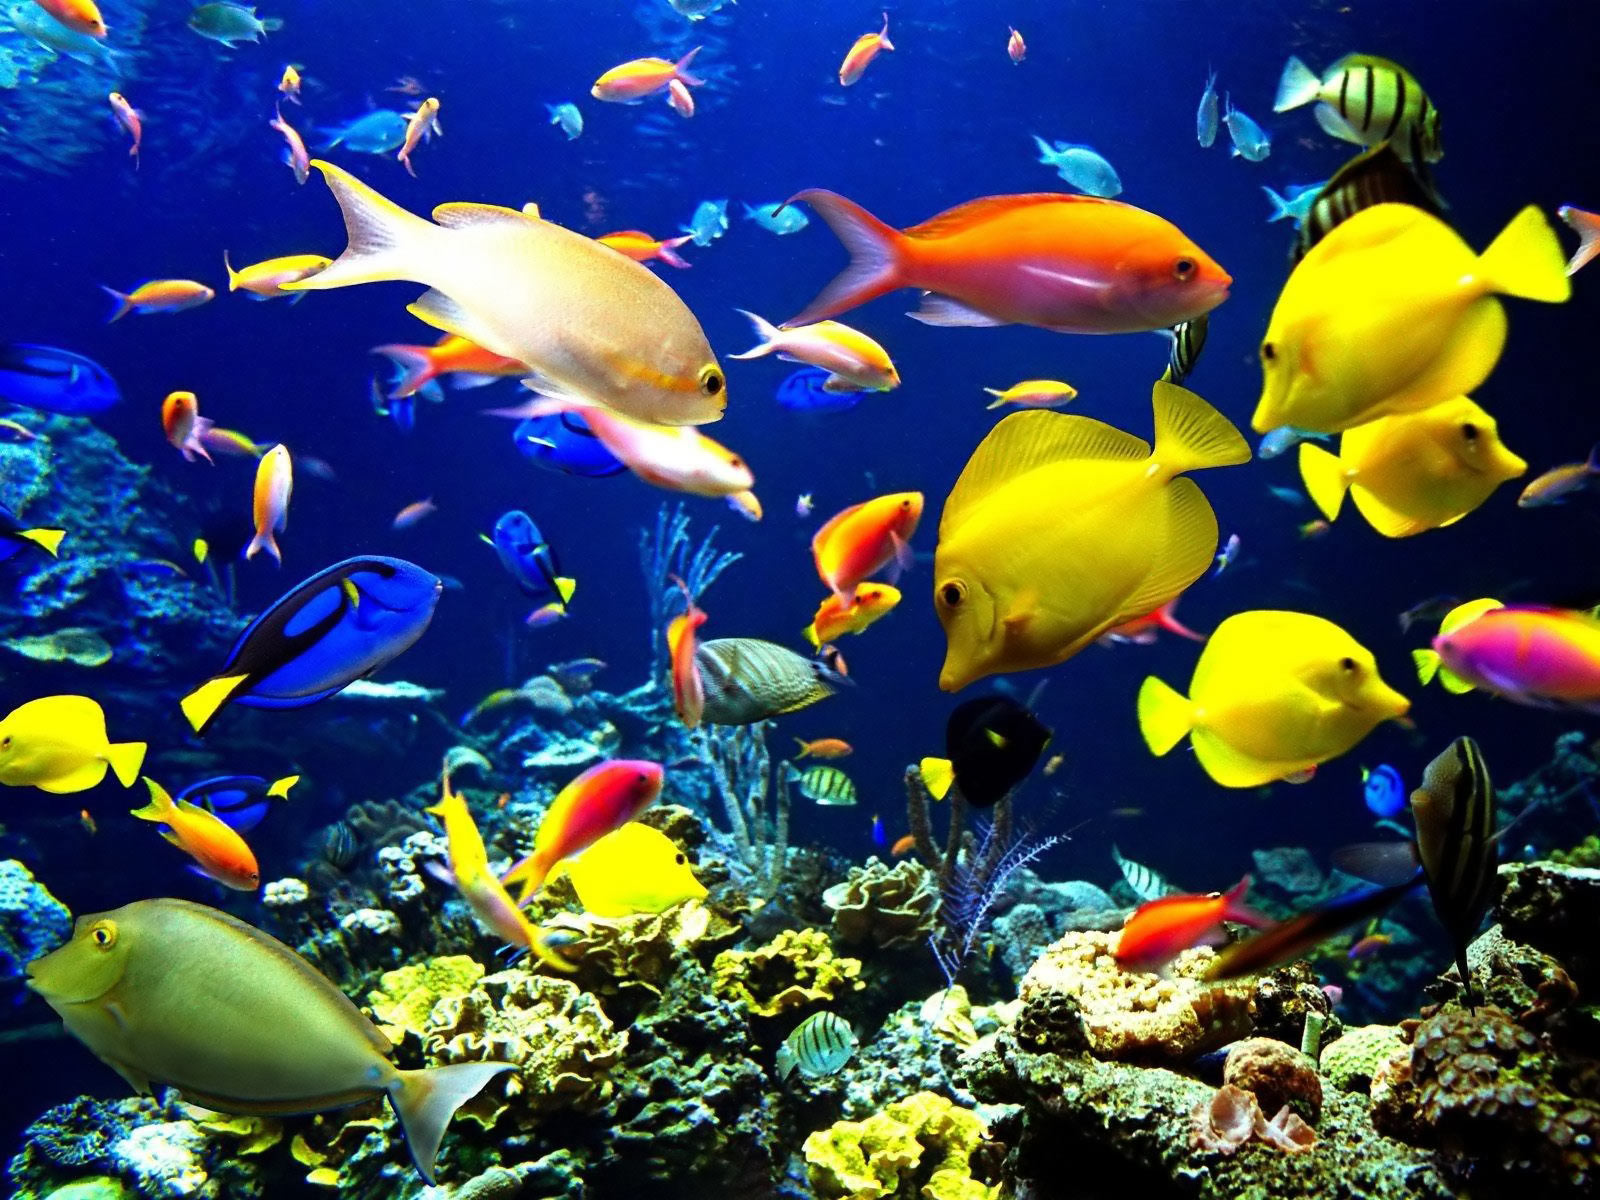 Android Live Wallpaper Free: live fish wallpaper